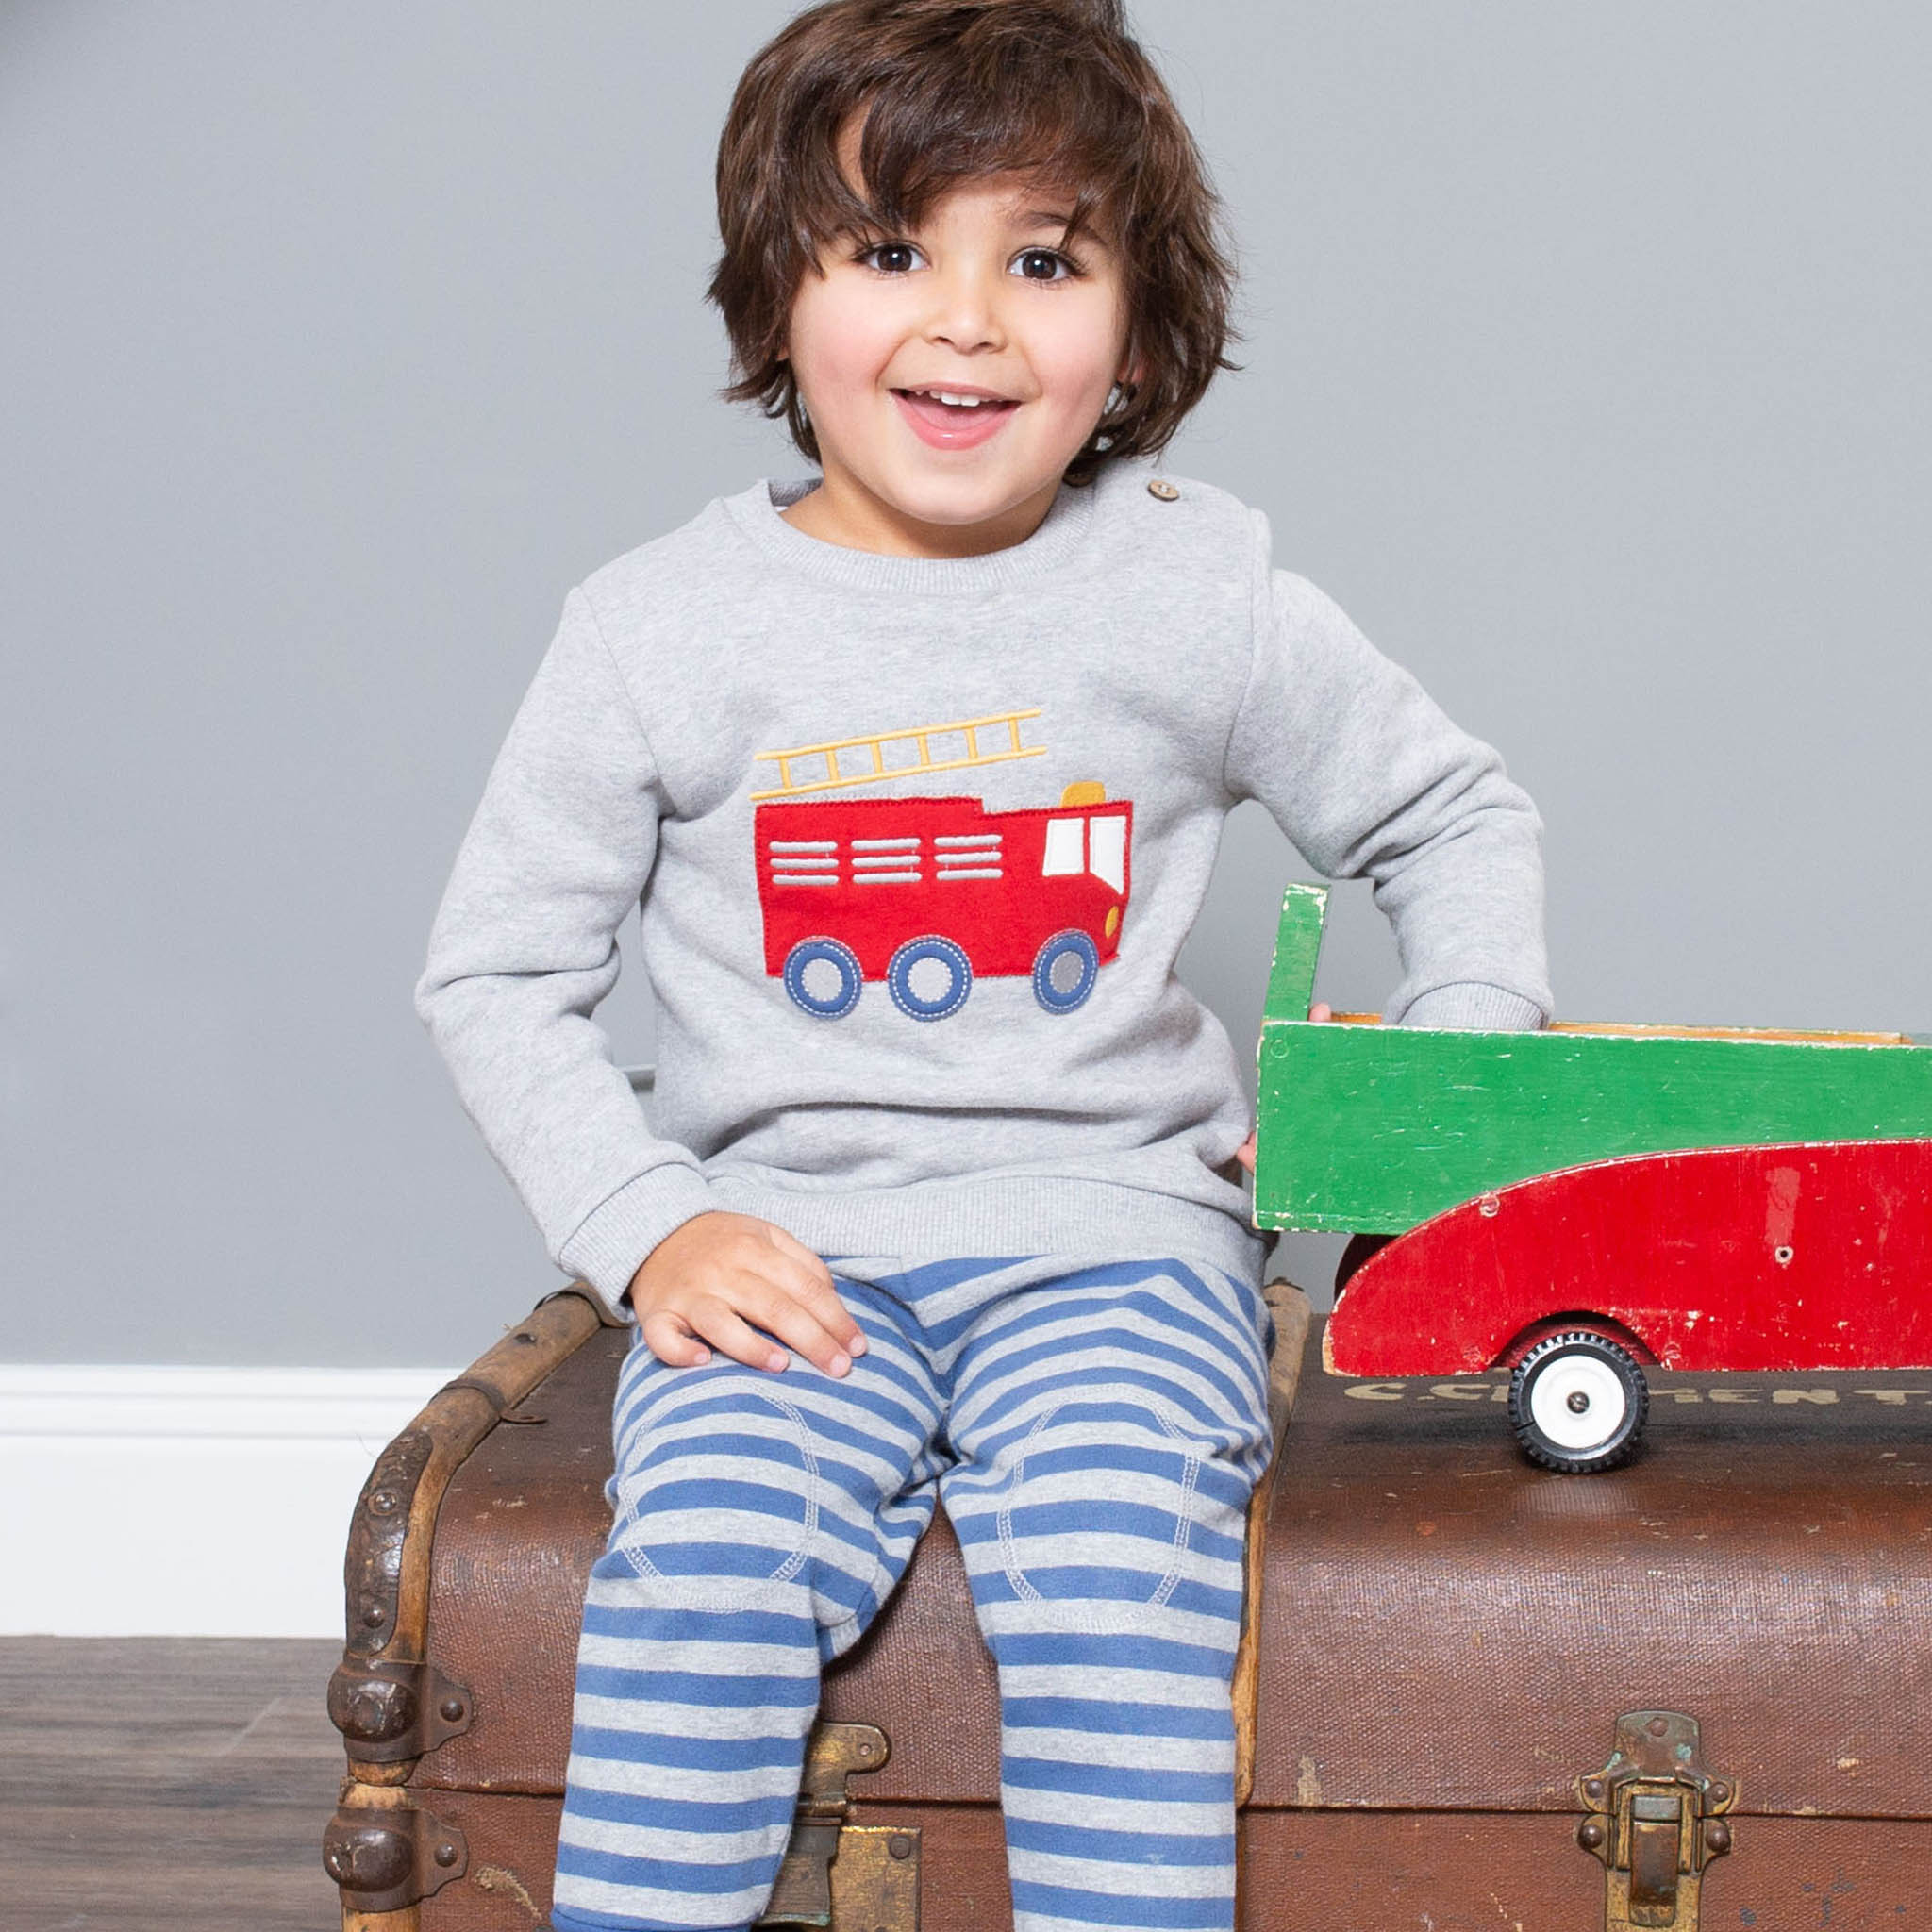 SALE £24.00 Kite Fire Engine Rescue Sweatshirt (was £30.00)